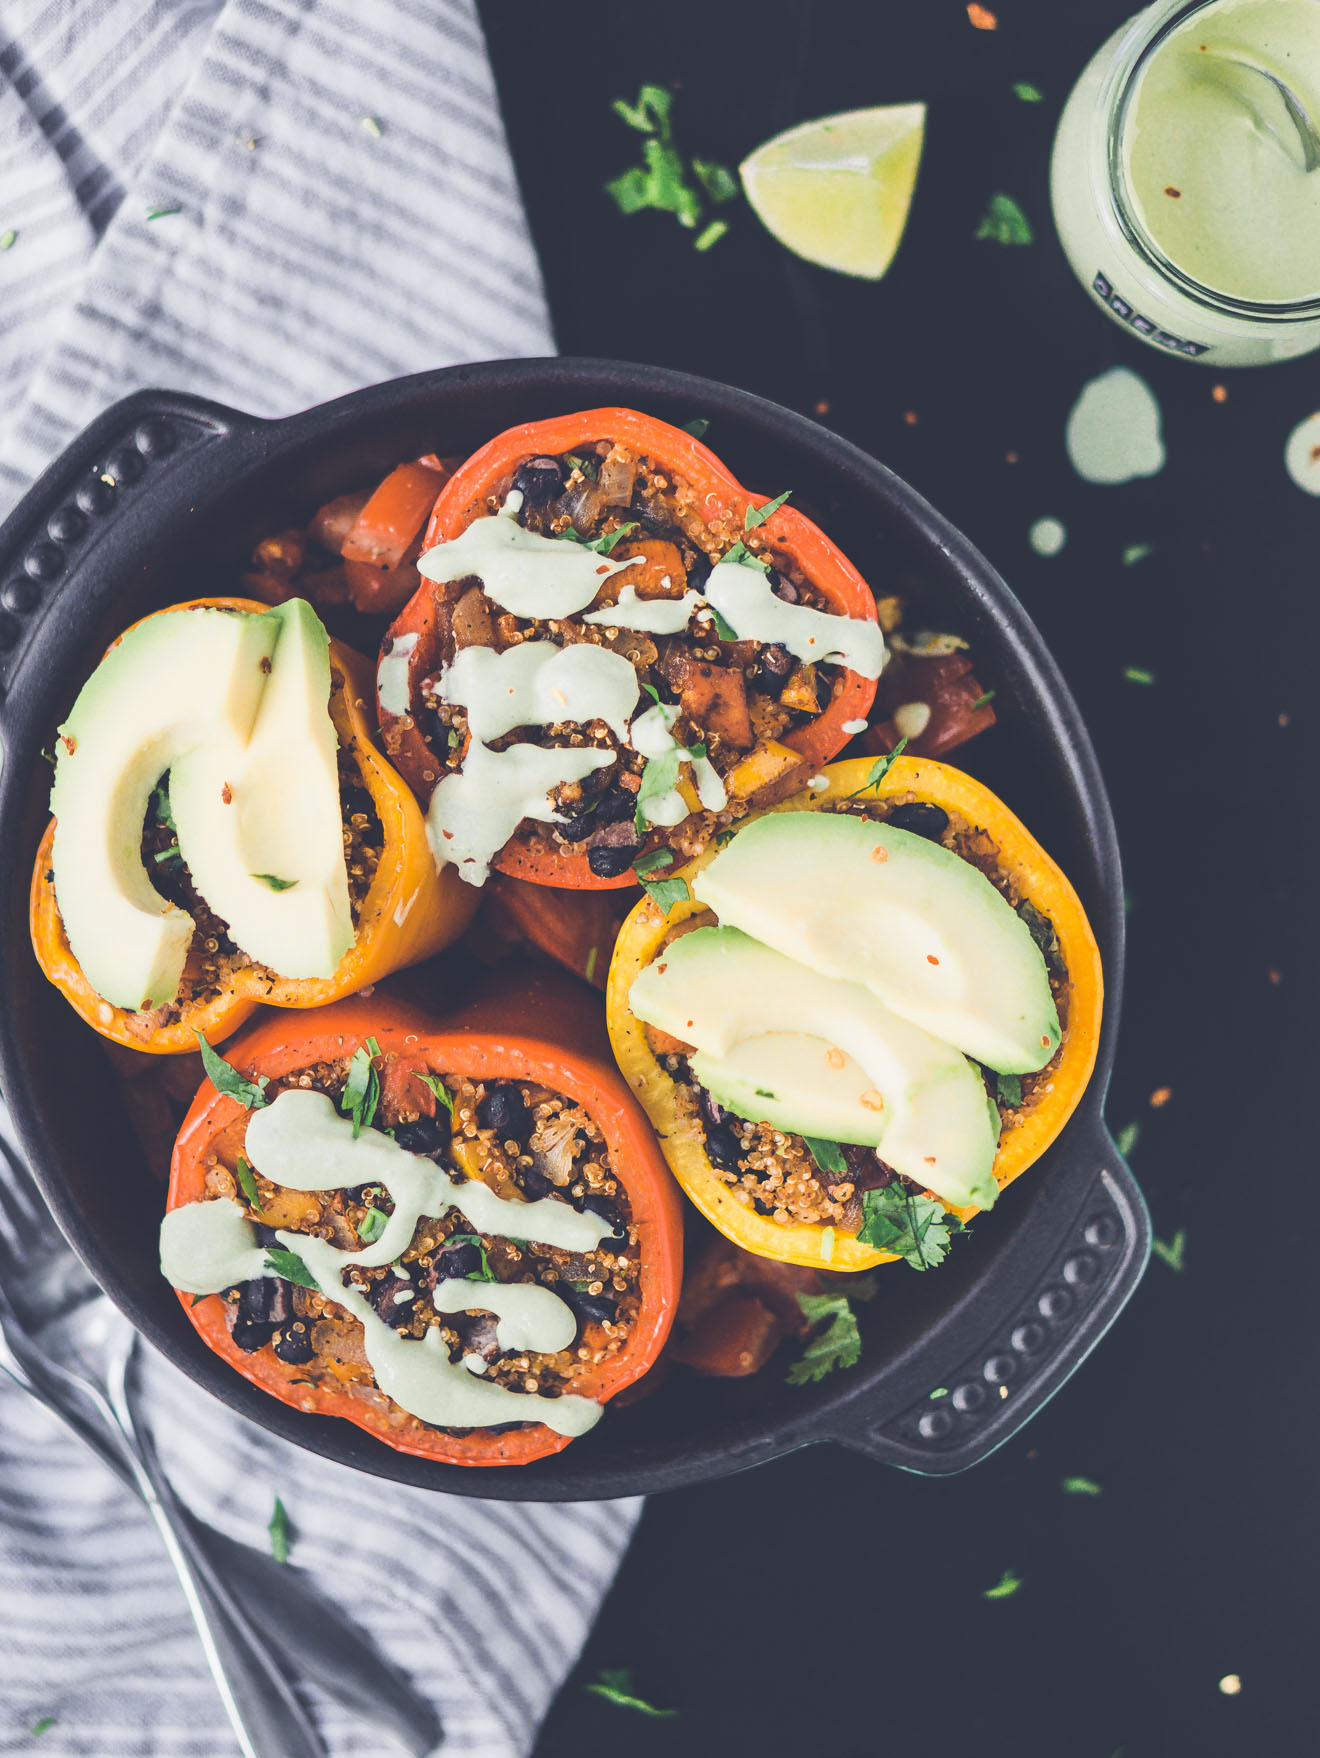 Flavorful-Stuffed-Chipotle-Peppers-Plantbased